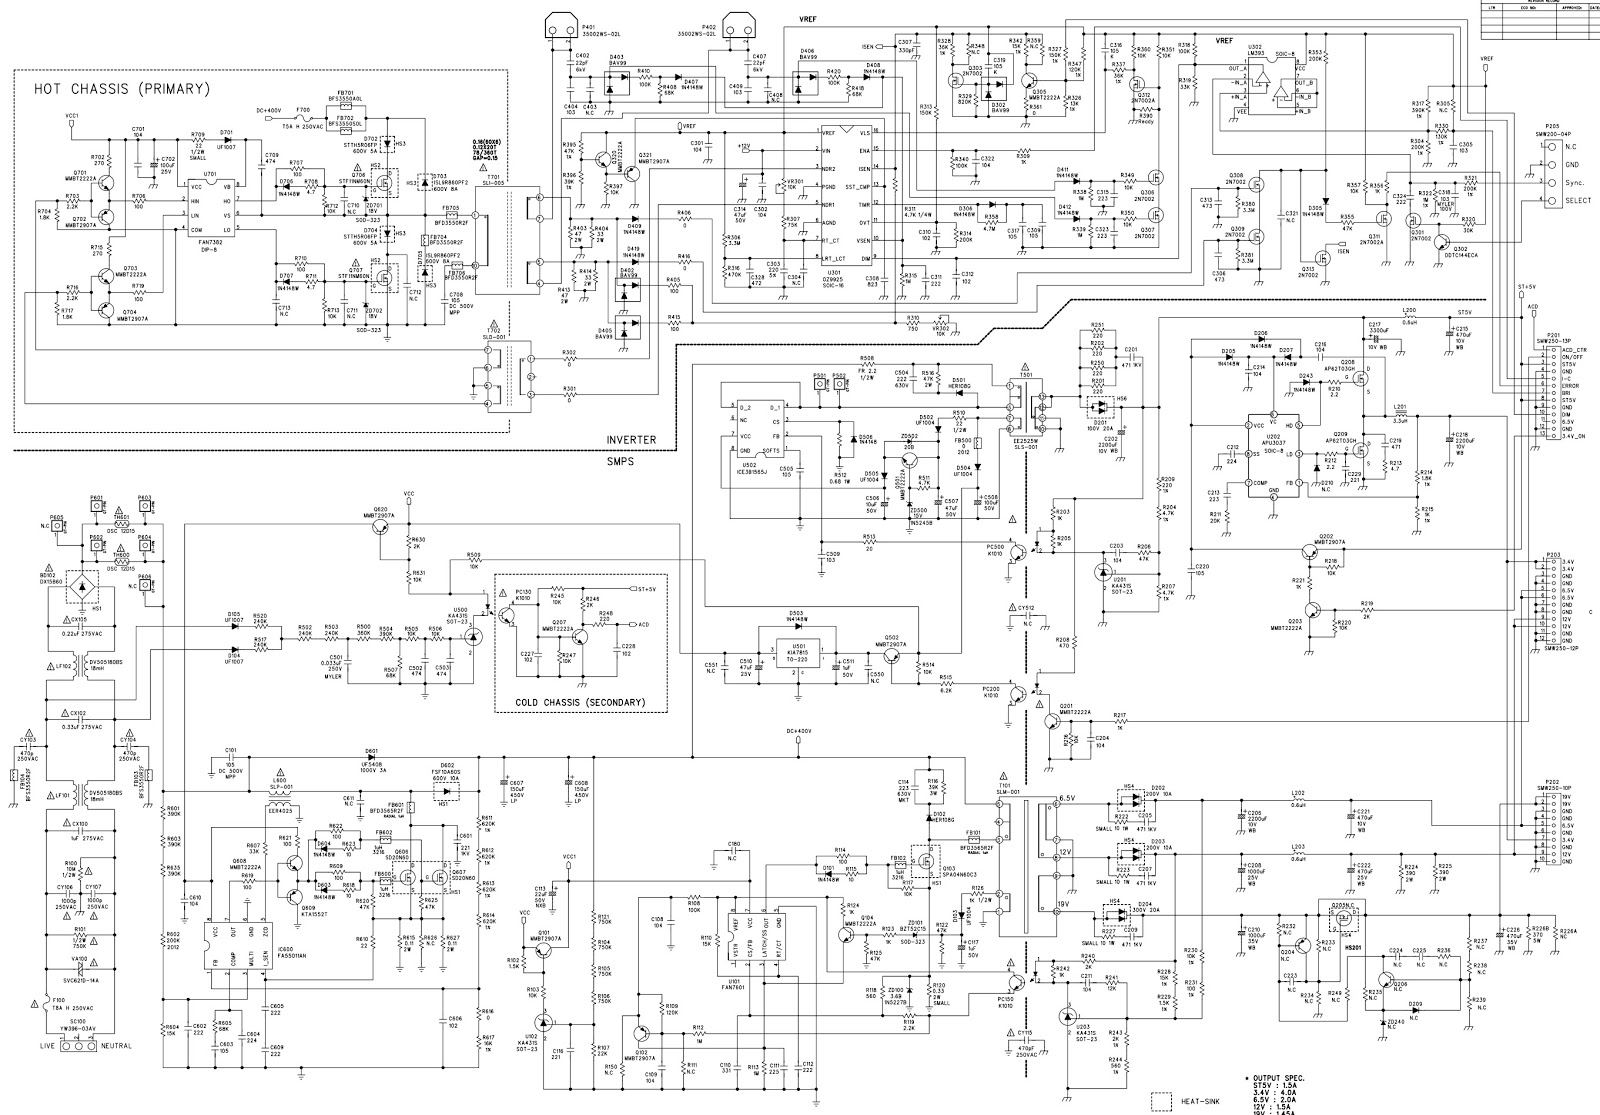 Master Electronics Repair    Lg Lp42slpv2ev3 Eay37229301  U2013 Lg Lcd Tv Power Board Schematic